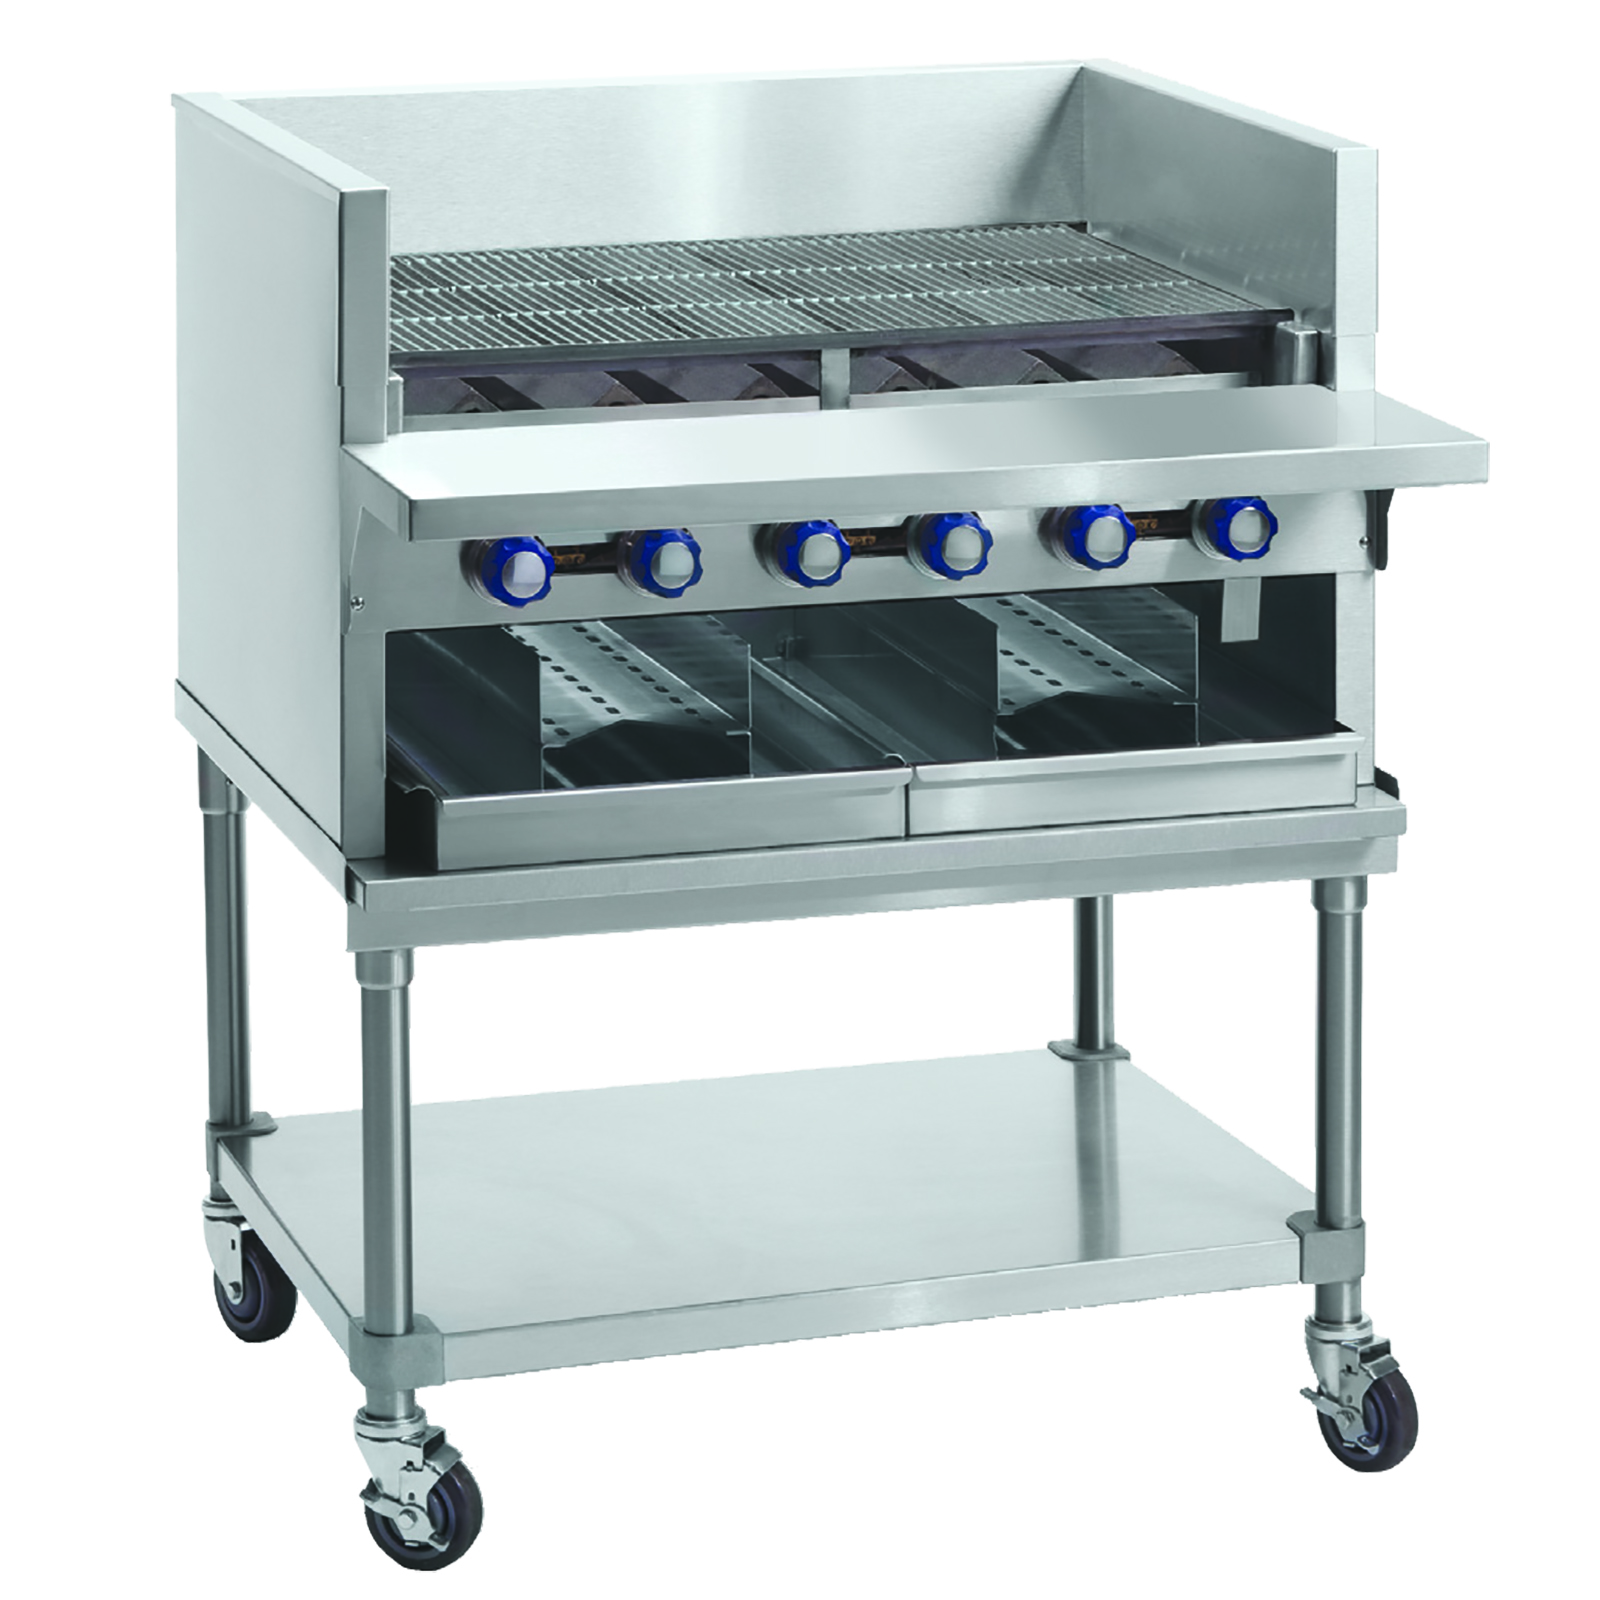 Imperial IABAT-60 equipment stand, for countertop cooking